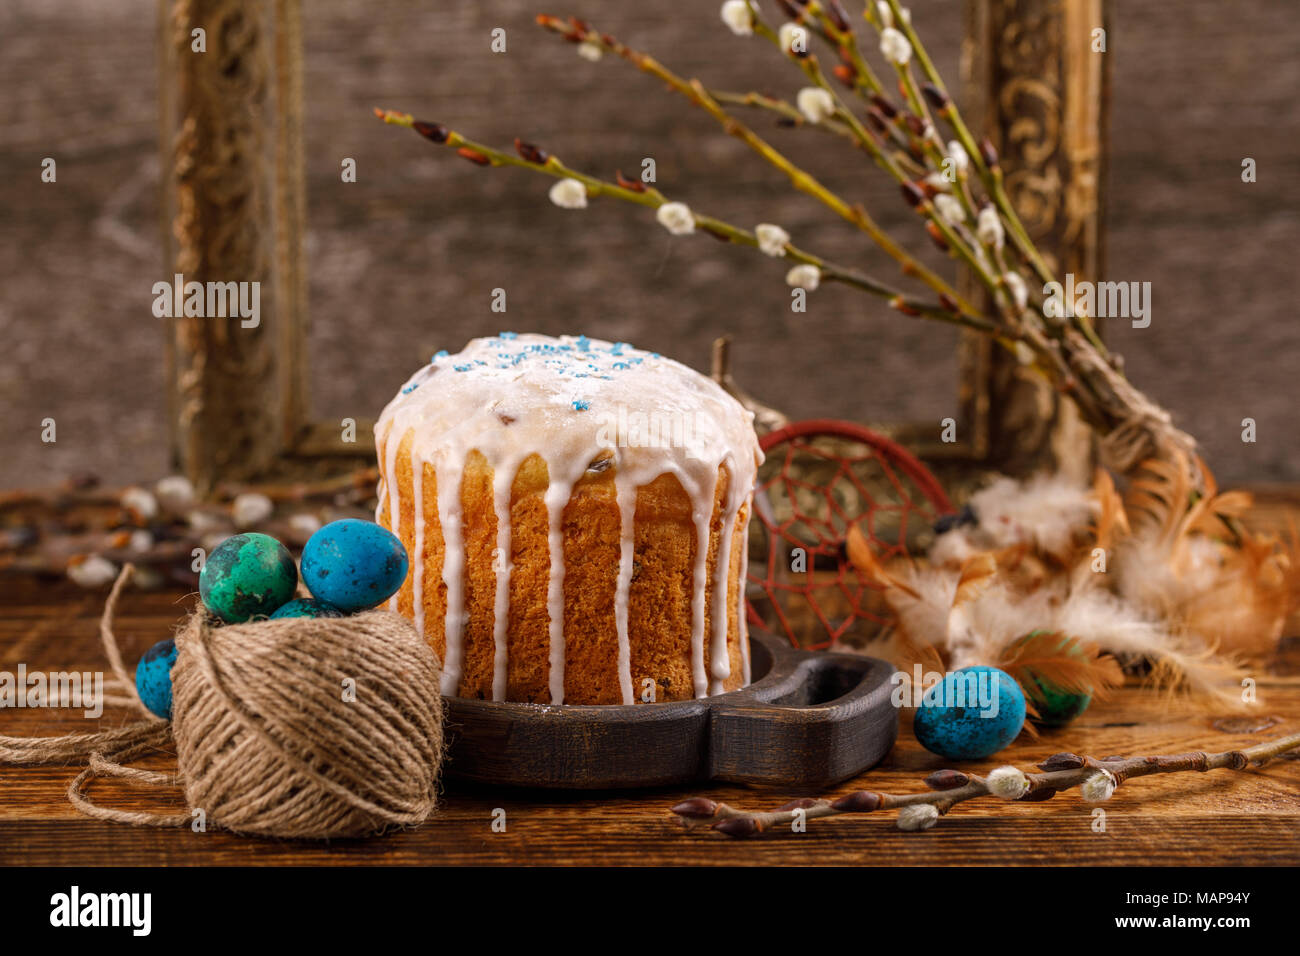 Christian holidays photos of Easter food in a rustic style. The table is covered with Easter cakes and painted eggs. Family Orthodox holiday - Stock Image